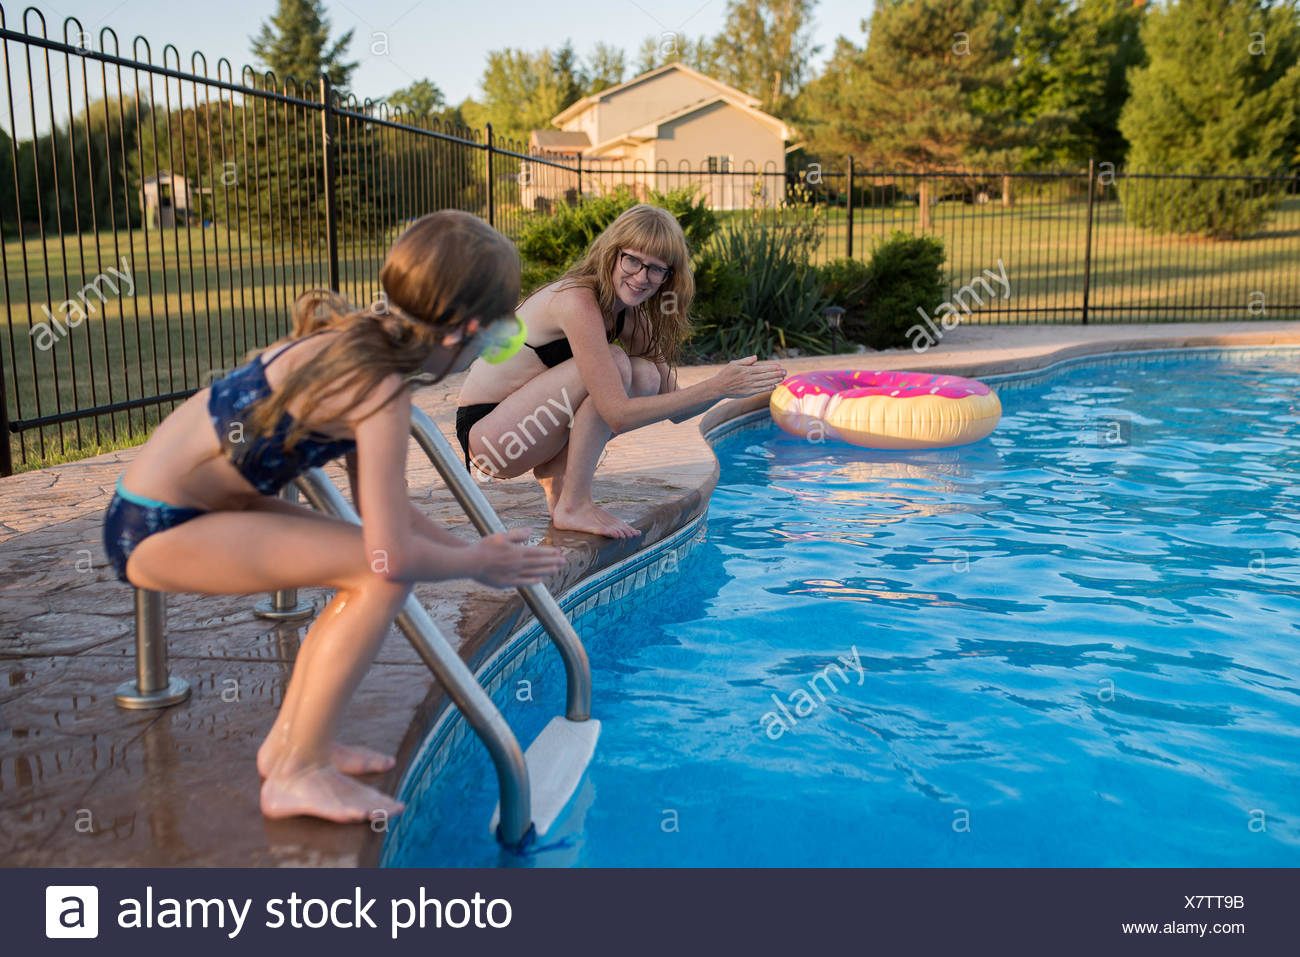 Mother And Daughter On Edge Of Swimming Pool, Ready To Dive In   Stock Image